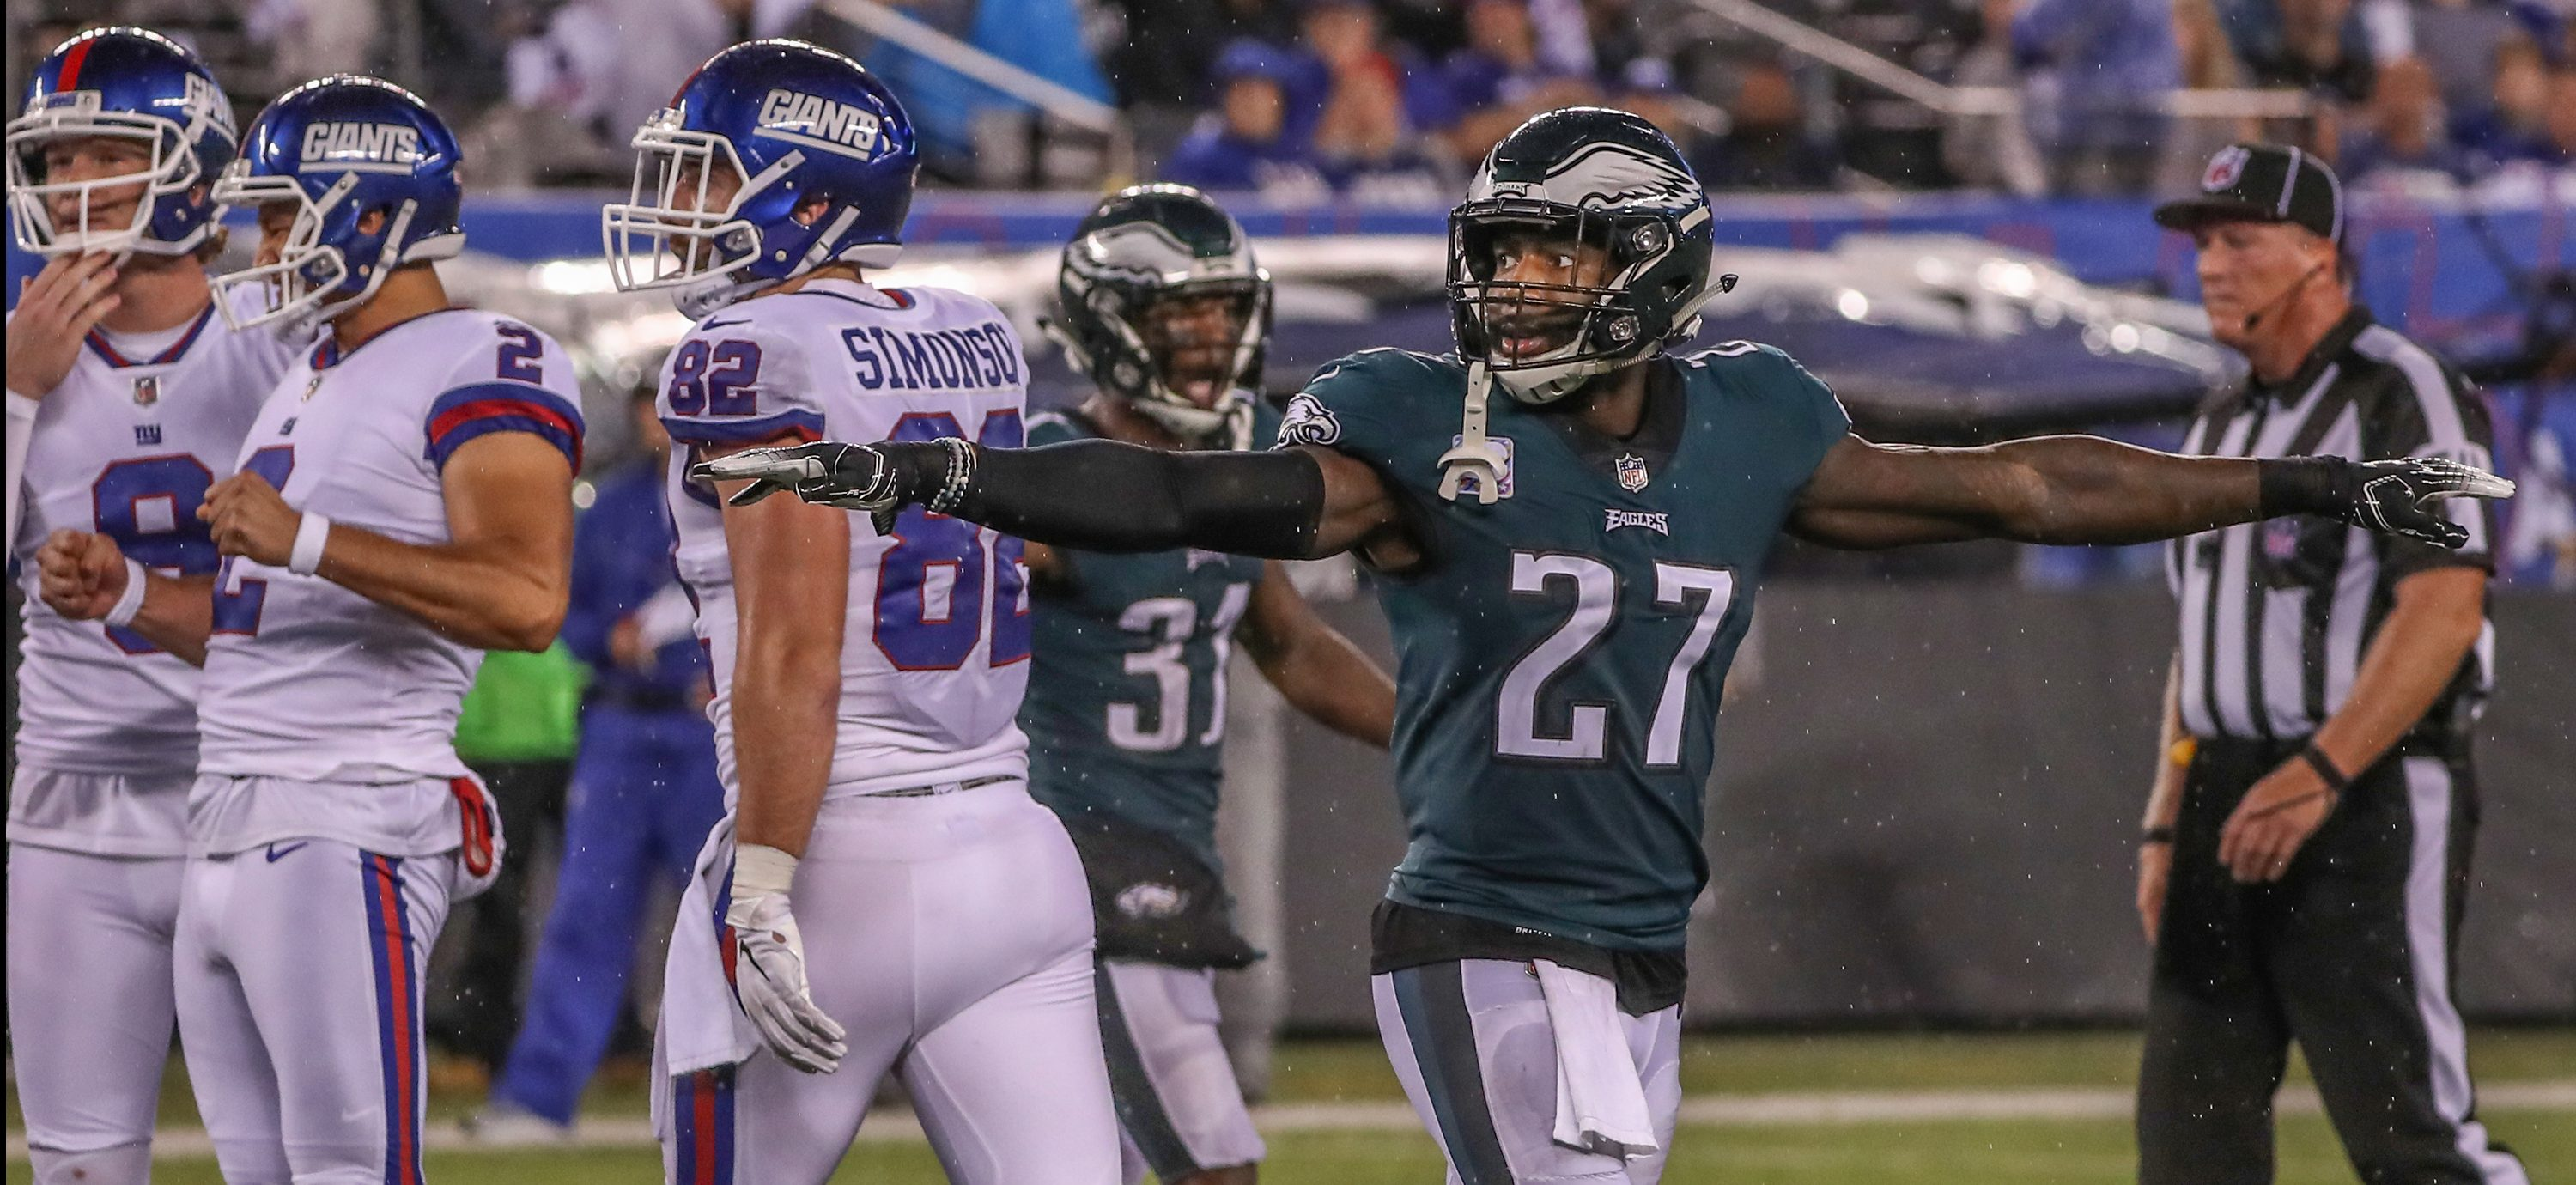 Eagles Malcolm Jenkins, right, signals no good after Giants kicker Aldrick Rosas missed a field goal last week.